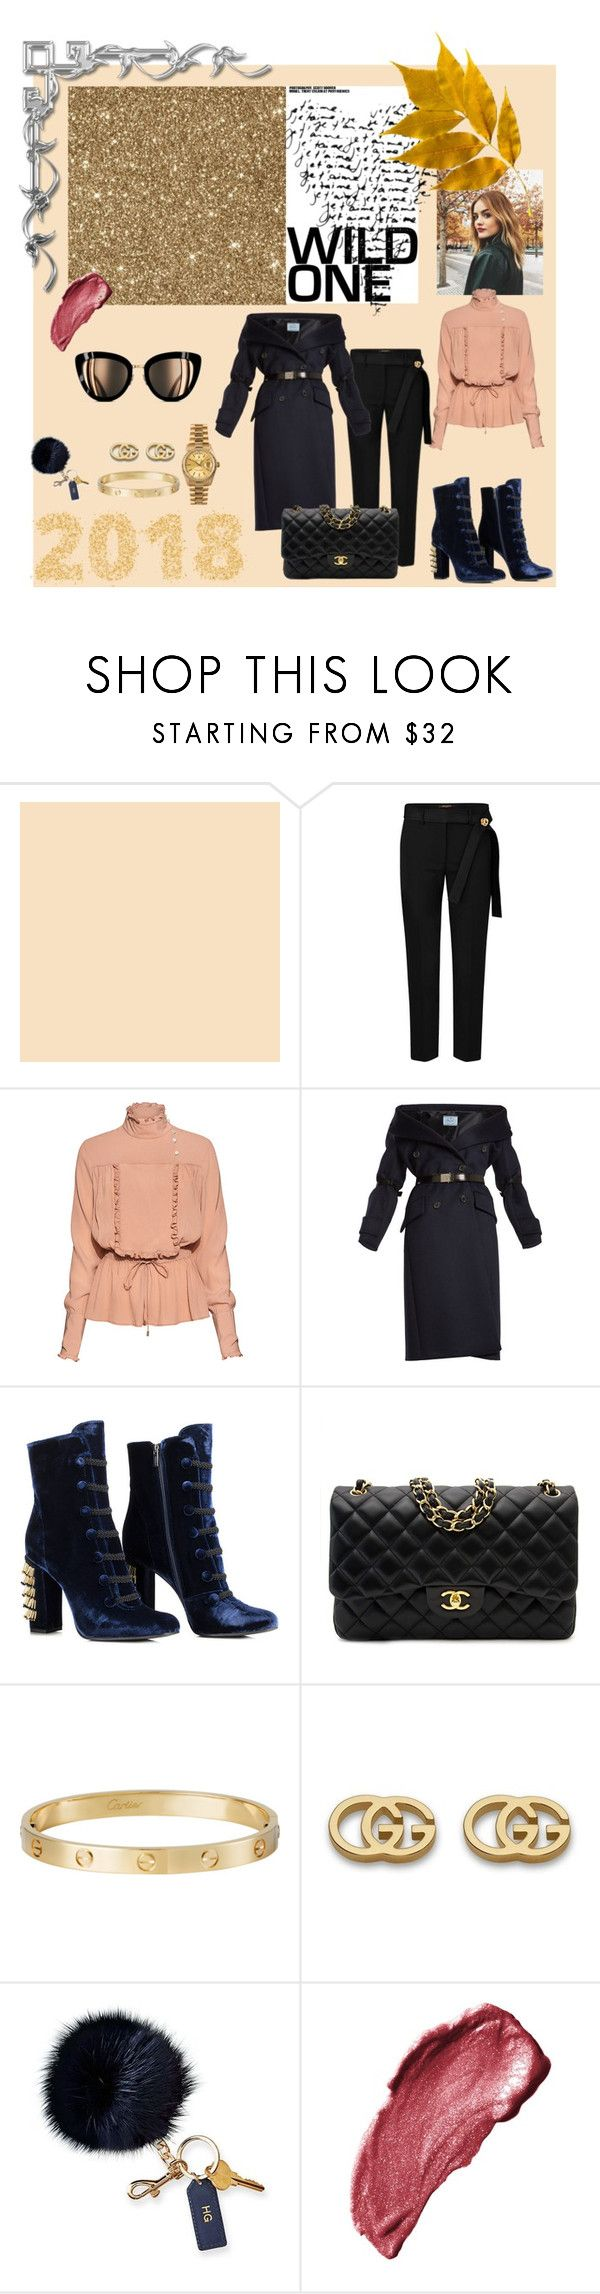 """2018 winter"" by pudzirma ❤ liked on Polyvore featuring Stella Jean, Prada, Chanel, Rolex, Cartier, Gucci, Mark & Graham and Anna Sui"